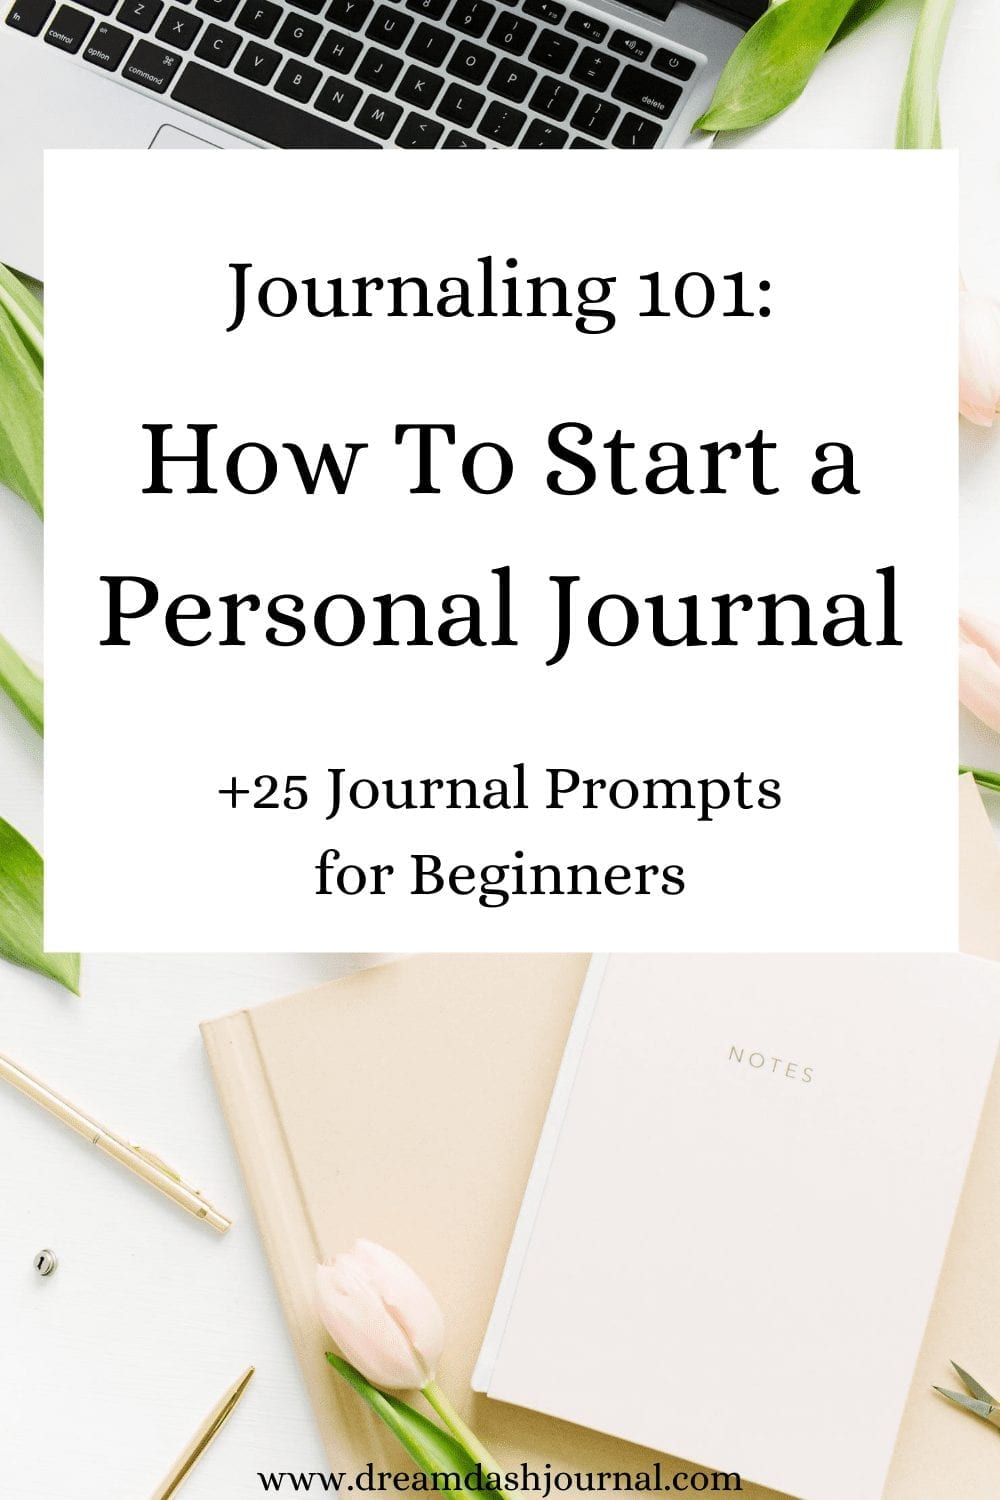 How to Start a Personal Journal For Beginners {With Easy Journal Prompts!}